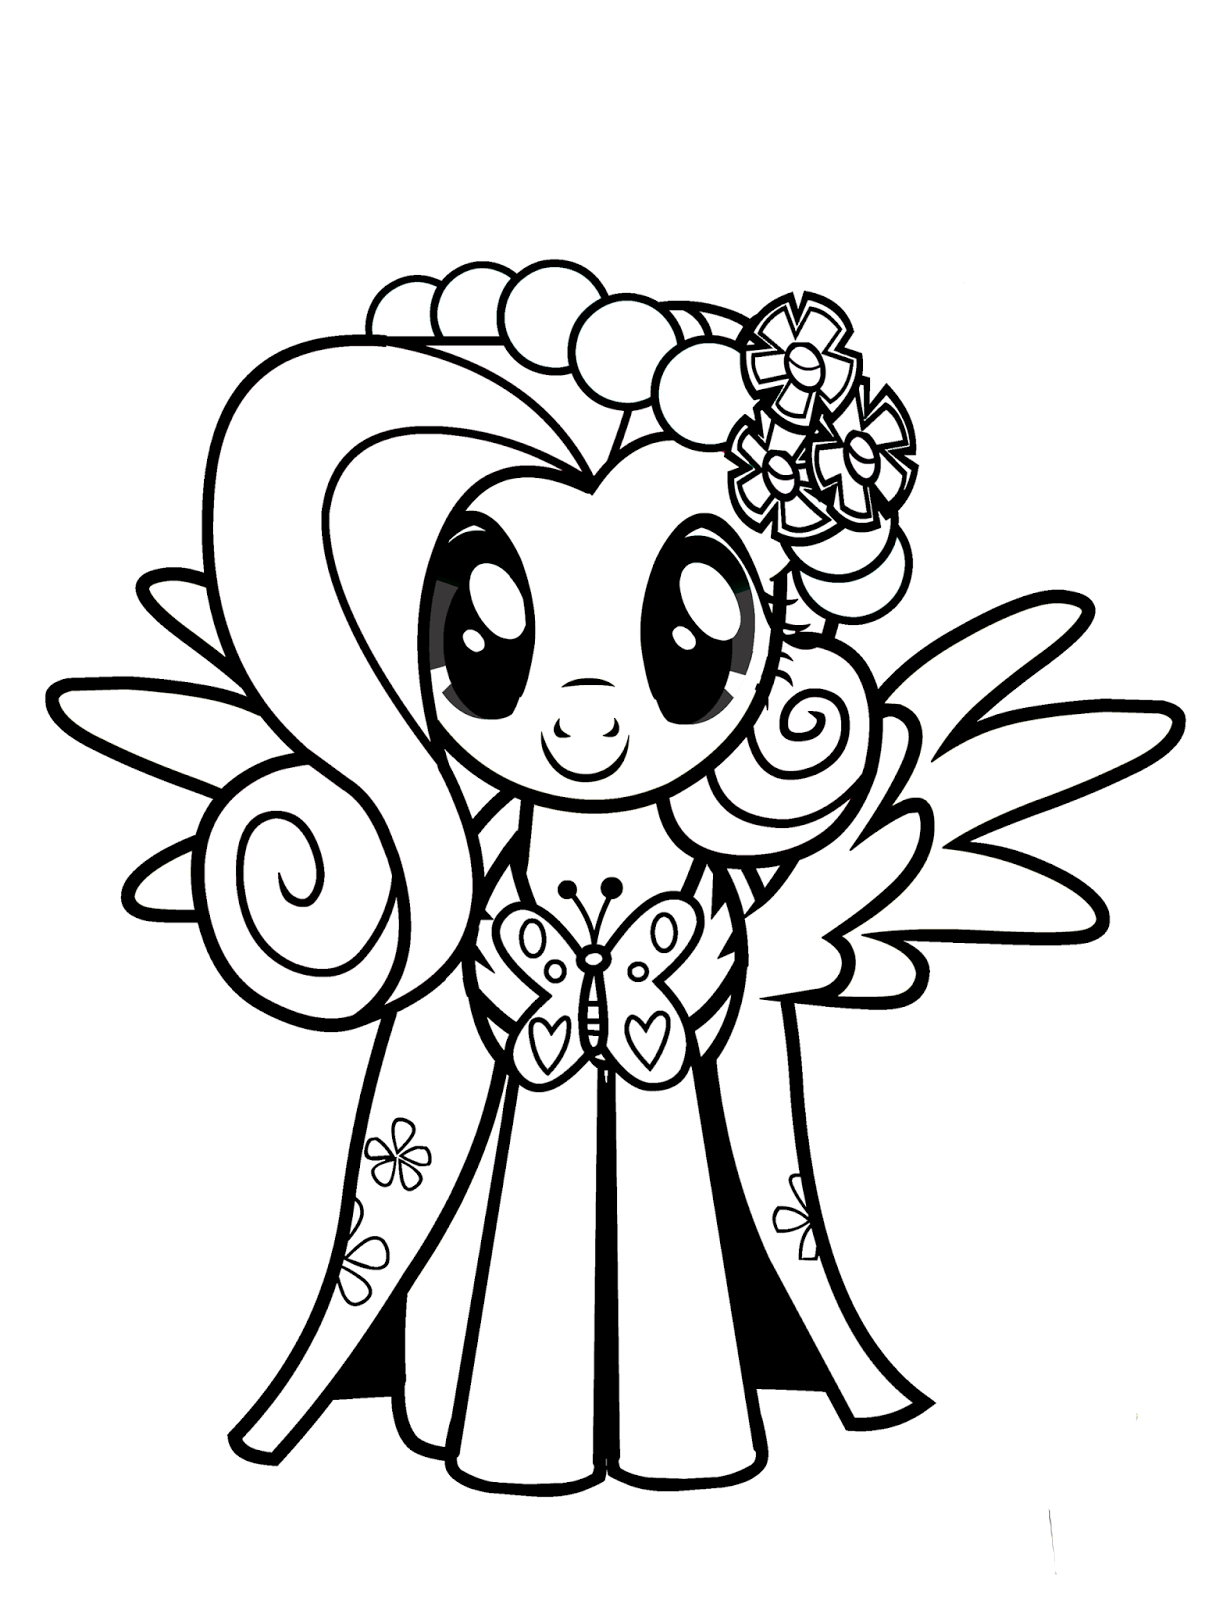 free my little pony coloring pages to print free printable my little pony coloring pages for kids free my print to pony coloring pages little